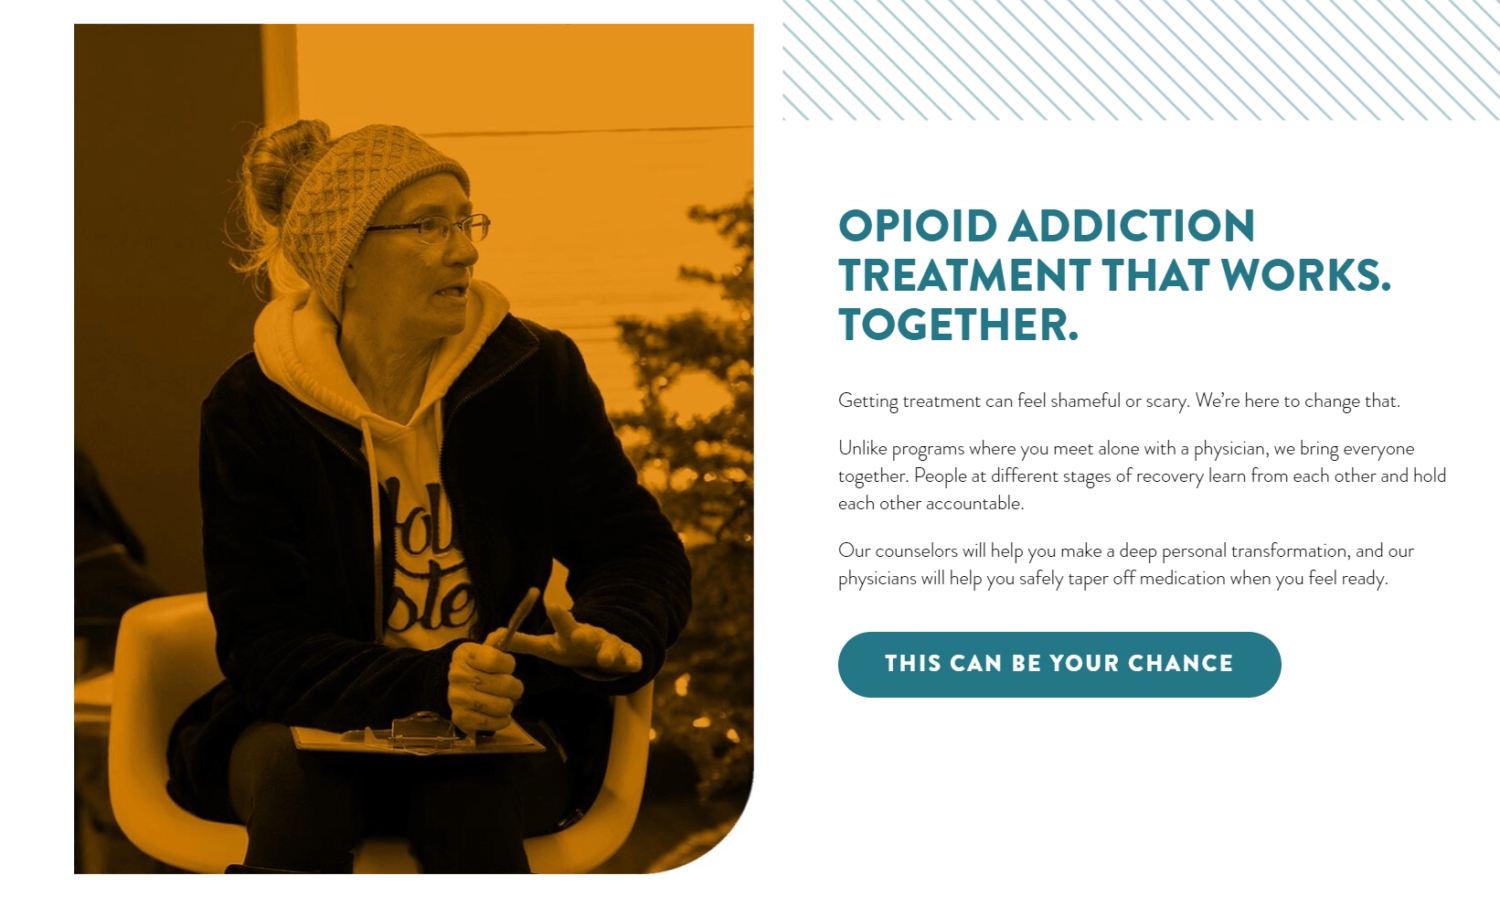 Groups Recover Together Nabs $60M for Value-Based Care Platform for Opioid Addiction Treatment